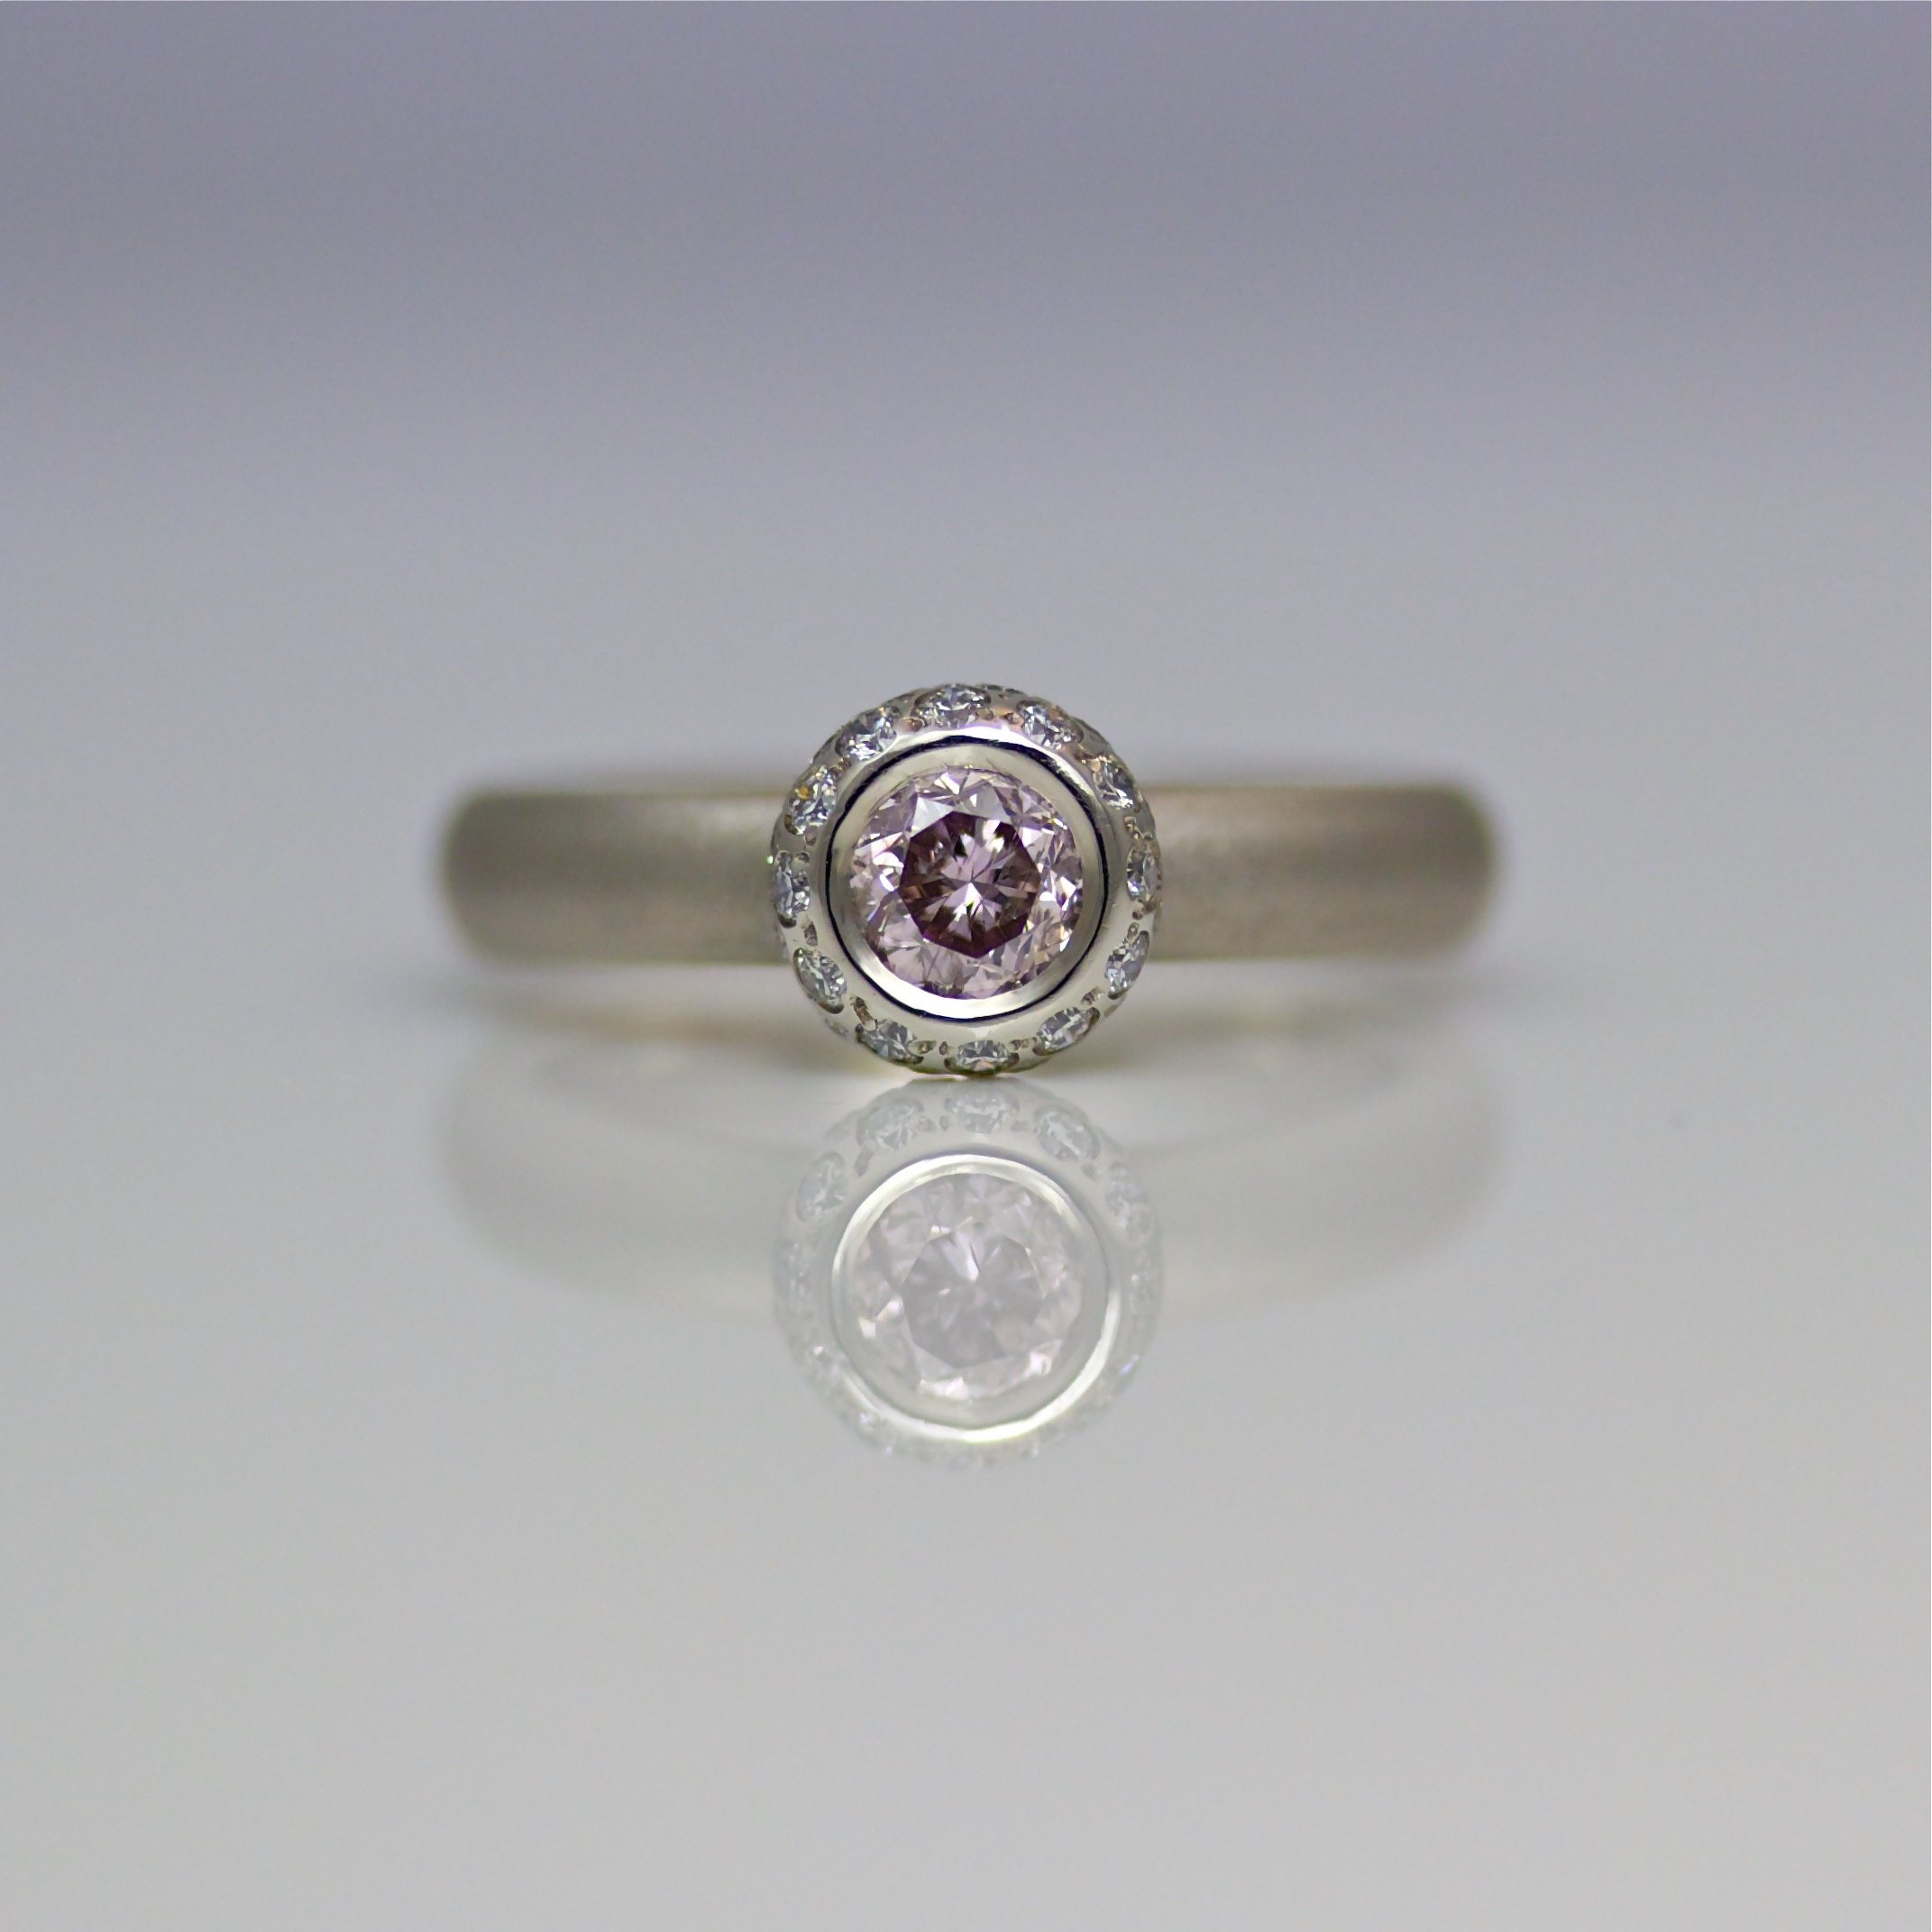 decor halo trusty and stone gold diamond for gemstone fkembii rings pink engagement sapphire